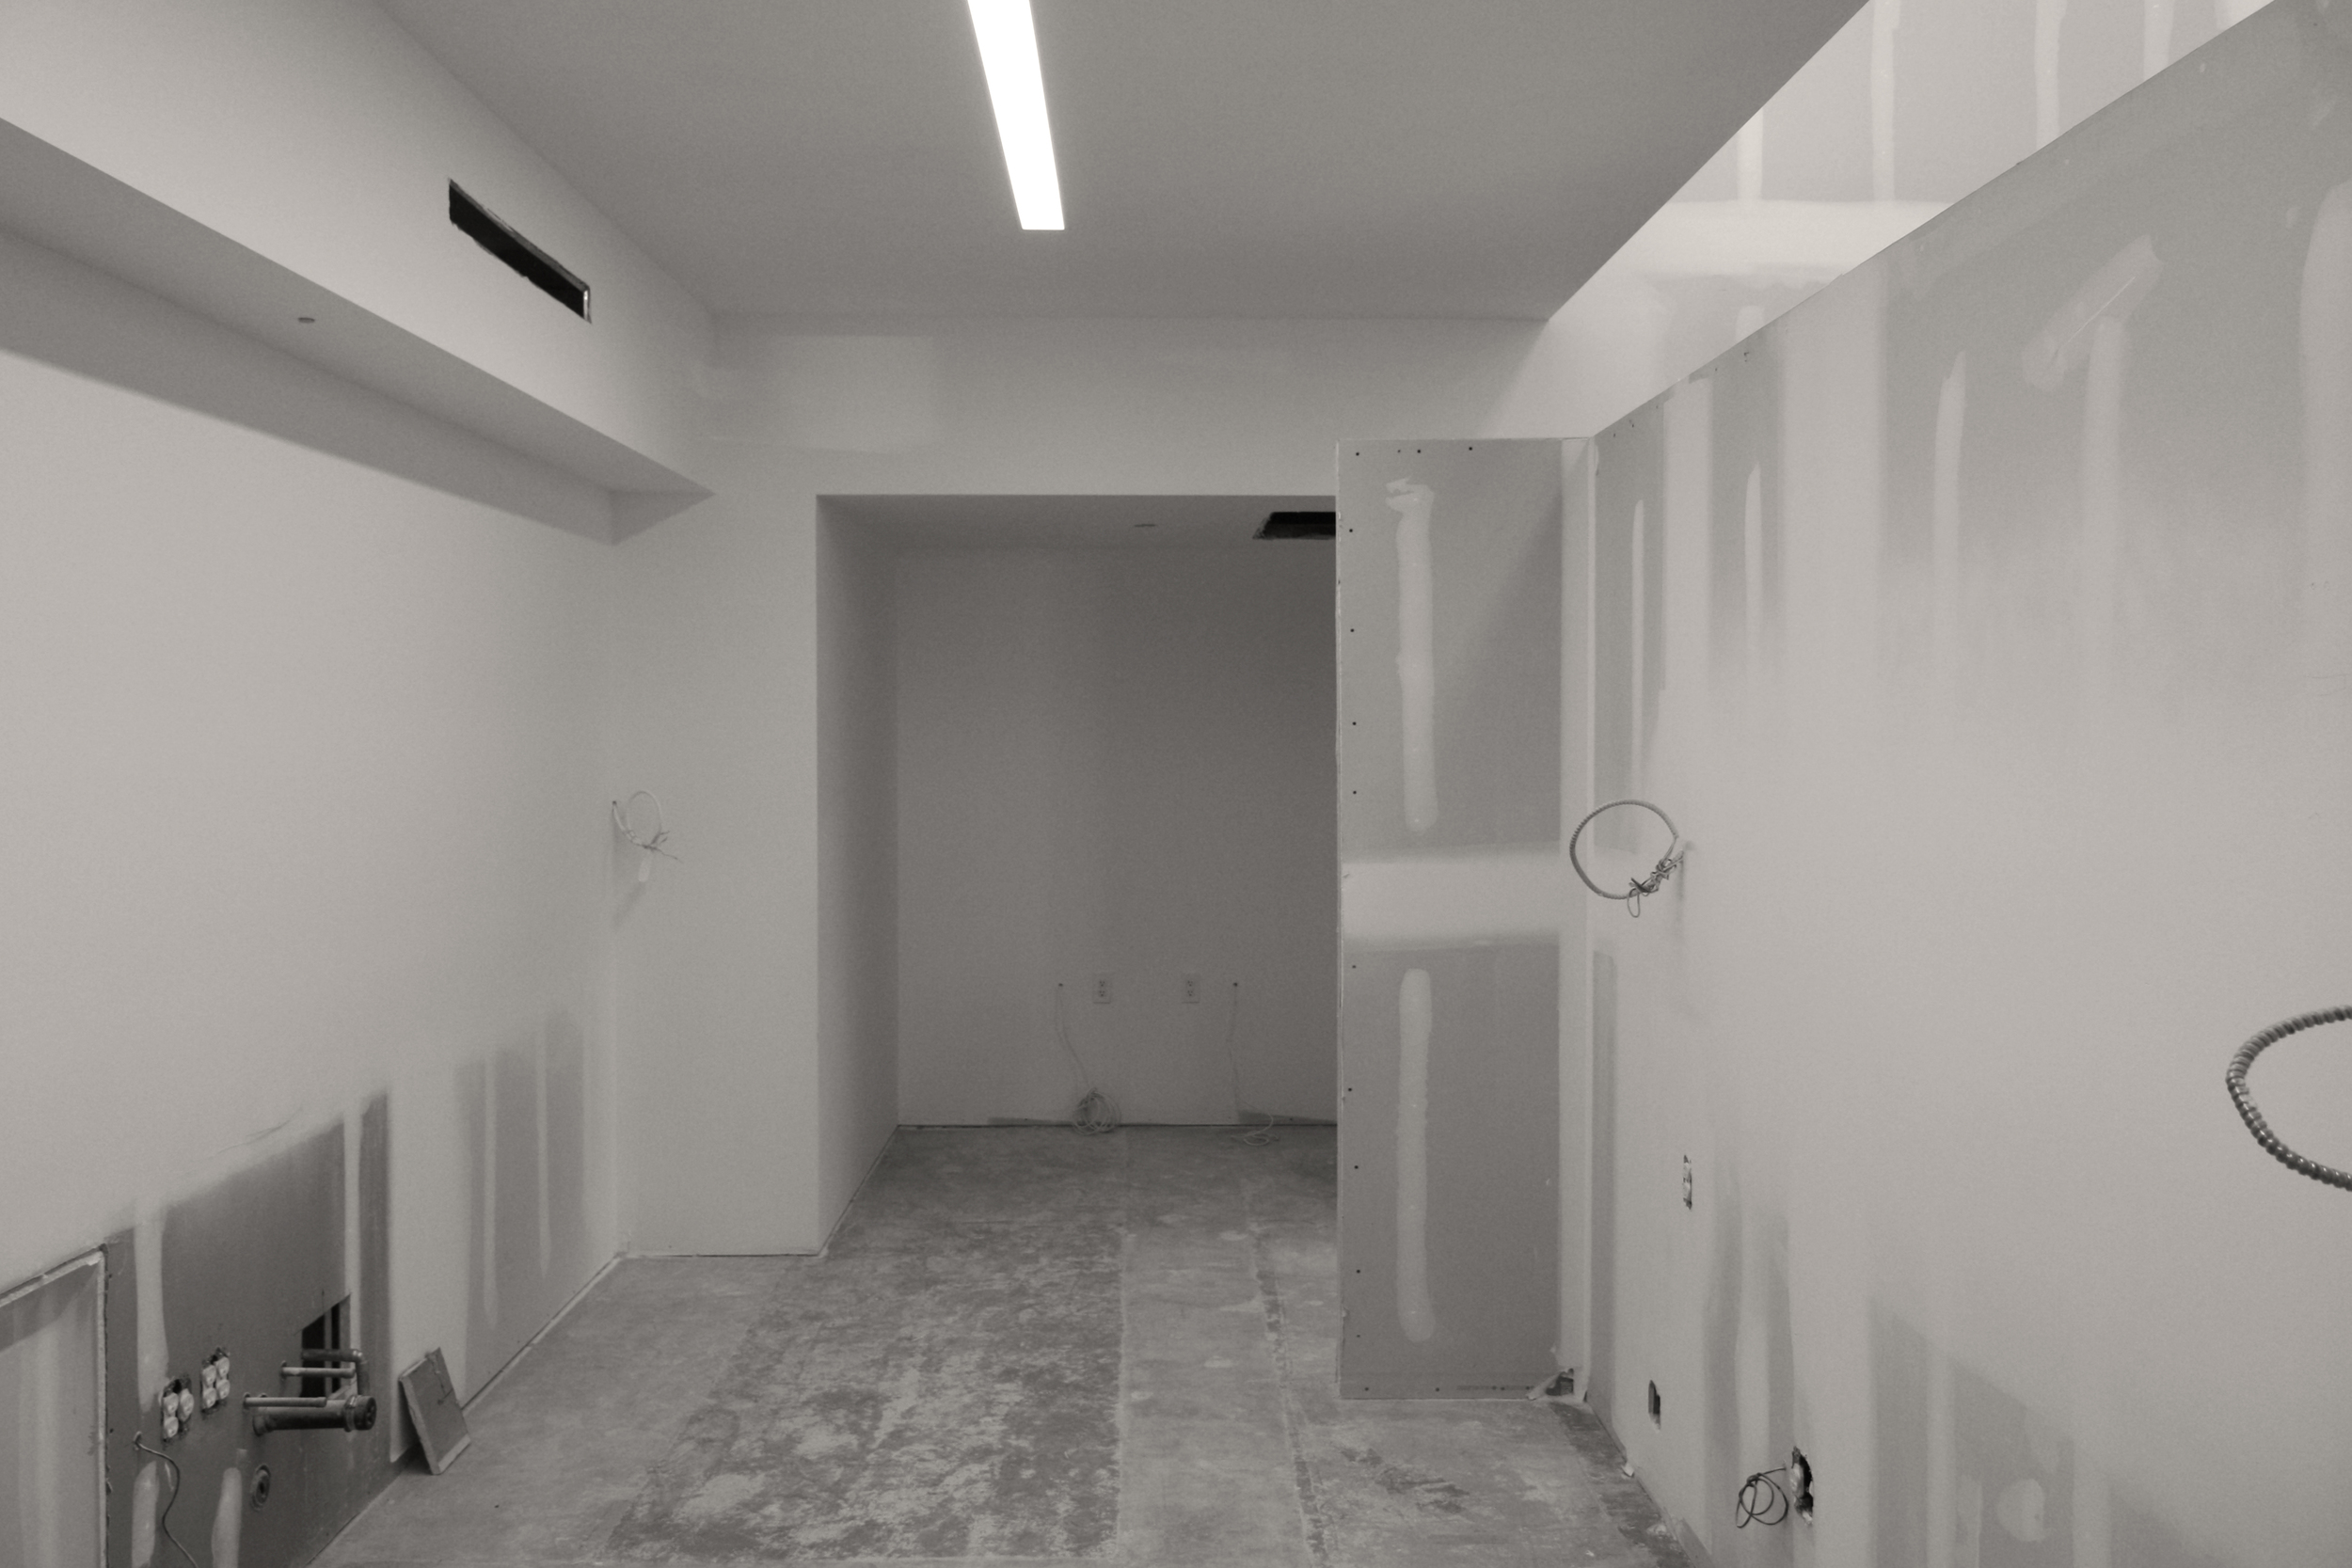 The kitchen space will feature an integrated seating nook at the rear wall.